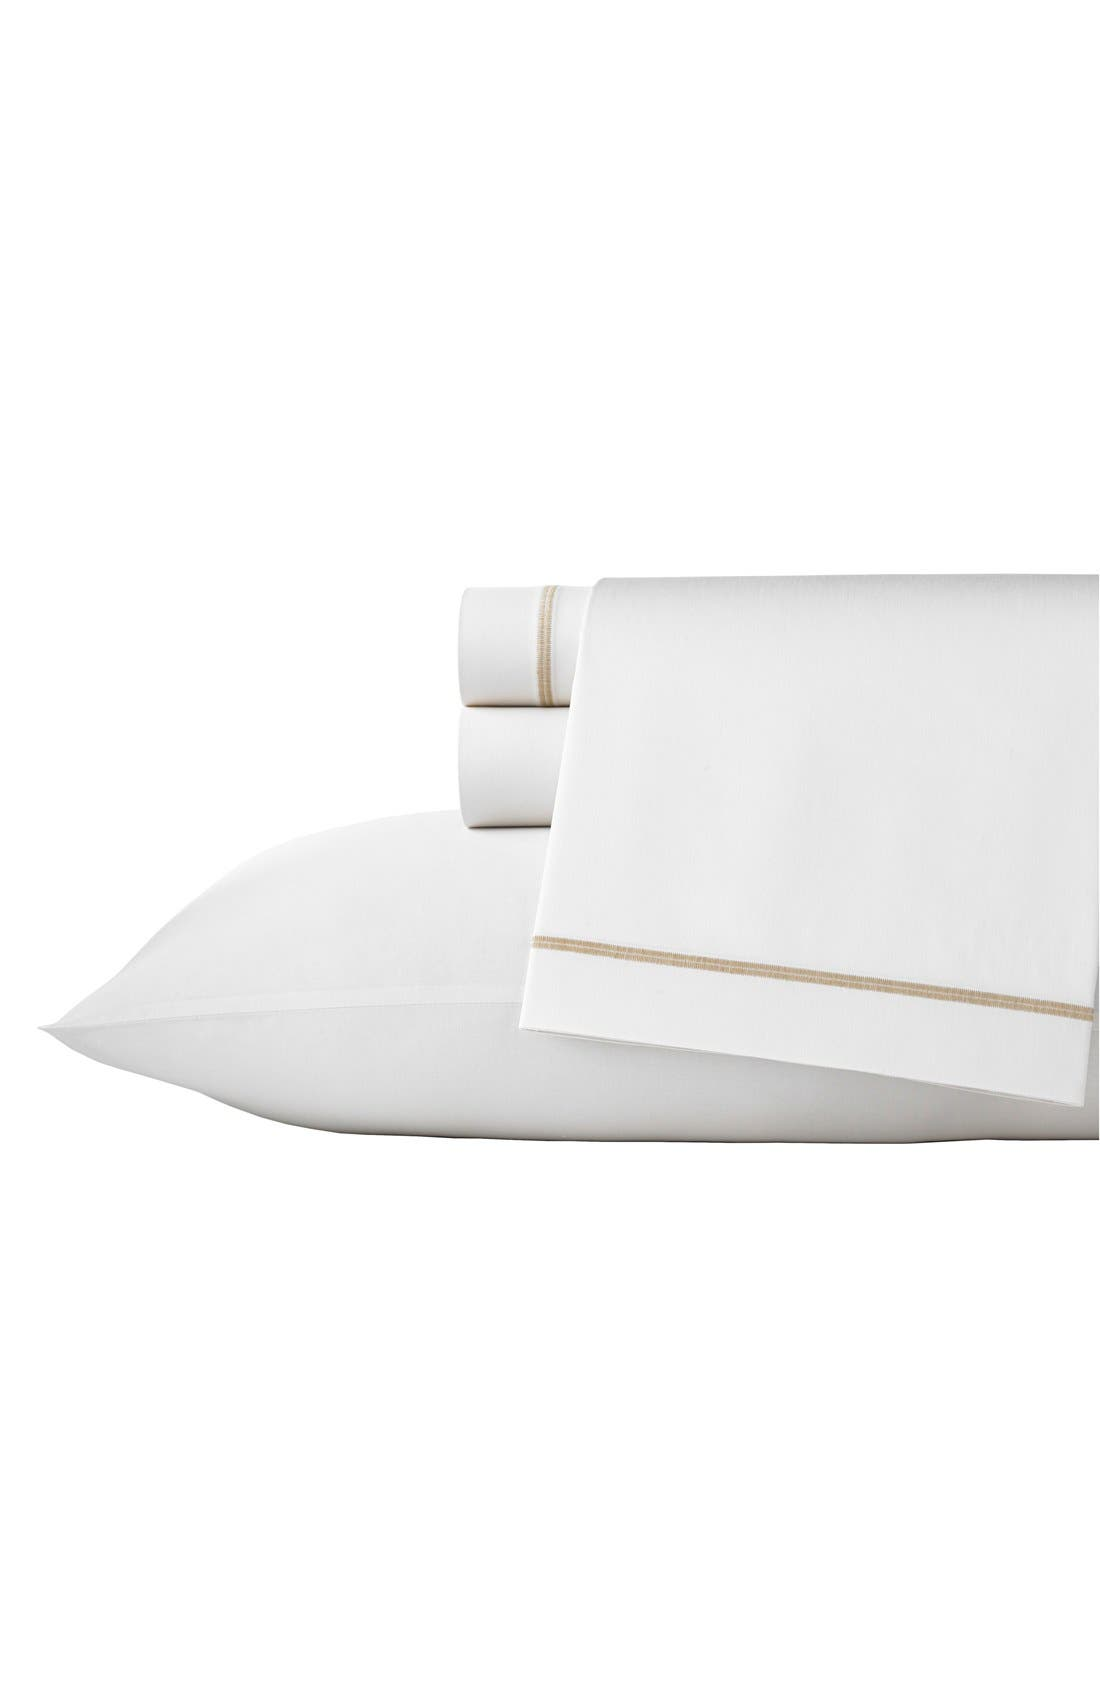 Vera Wang 'Winter Blossoms' 300 Thread Count Cotton Sateen Sheet Set